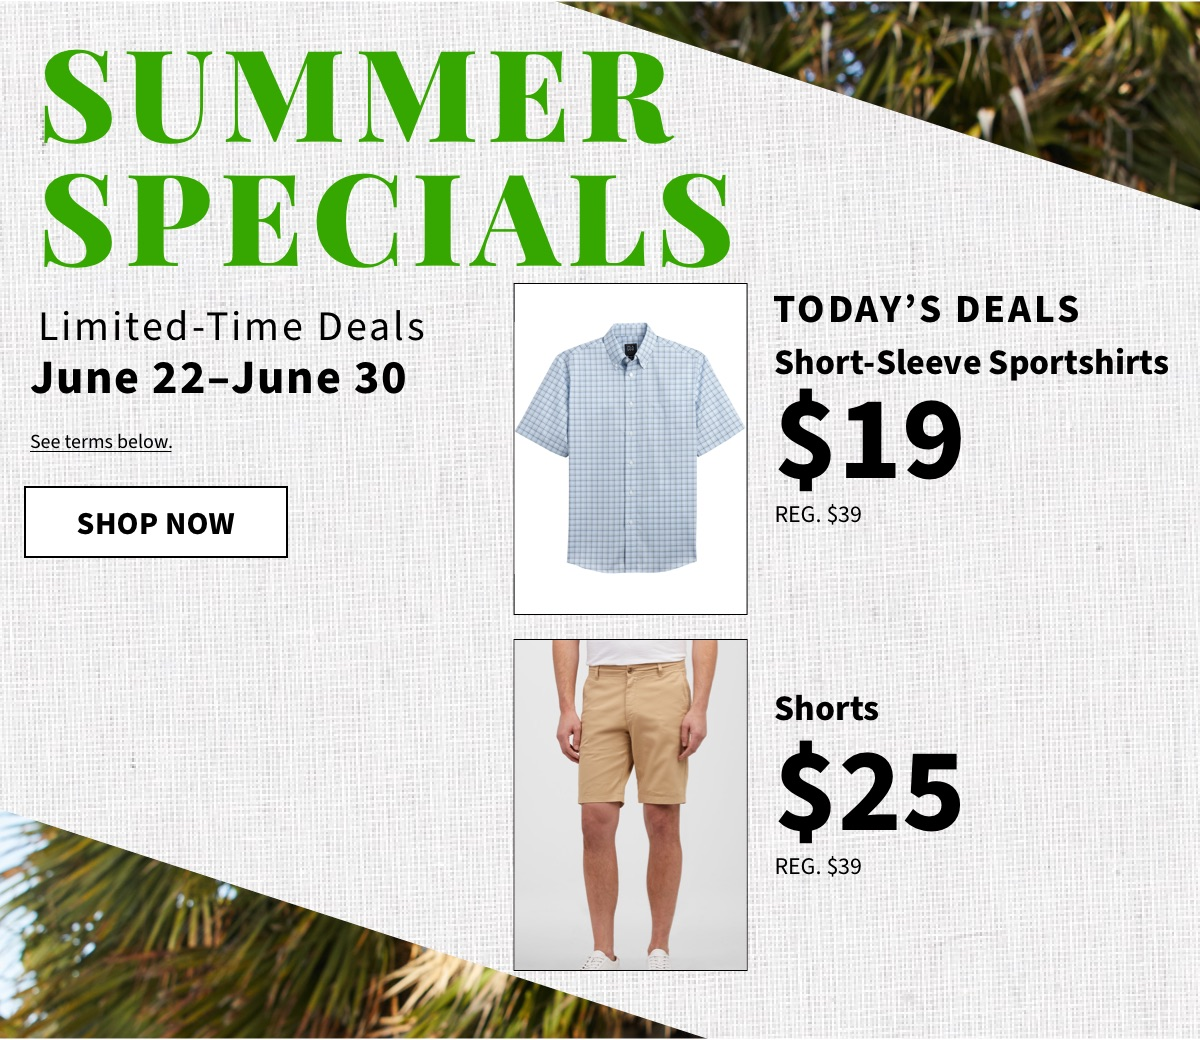 Summer Specials - Today's Deals S/S Sportshirts at $19 & $25 Shorts - Shop Now